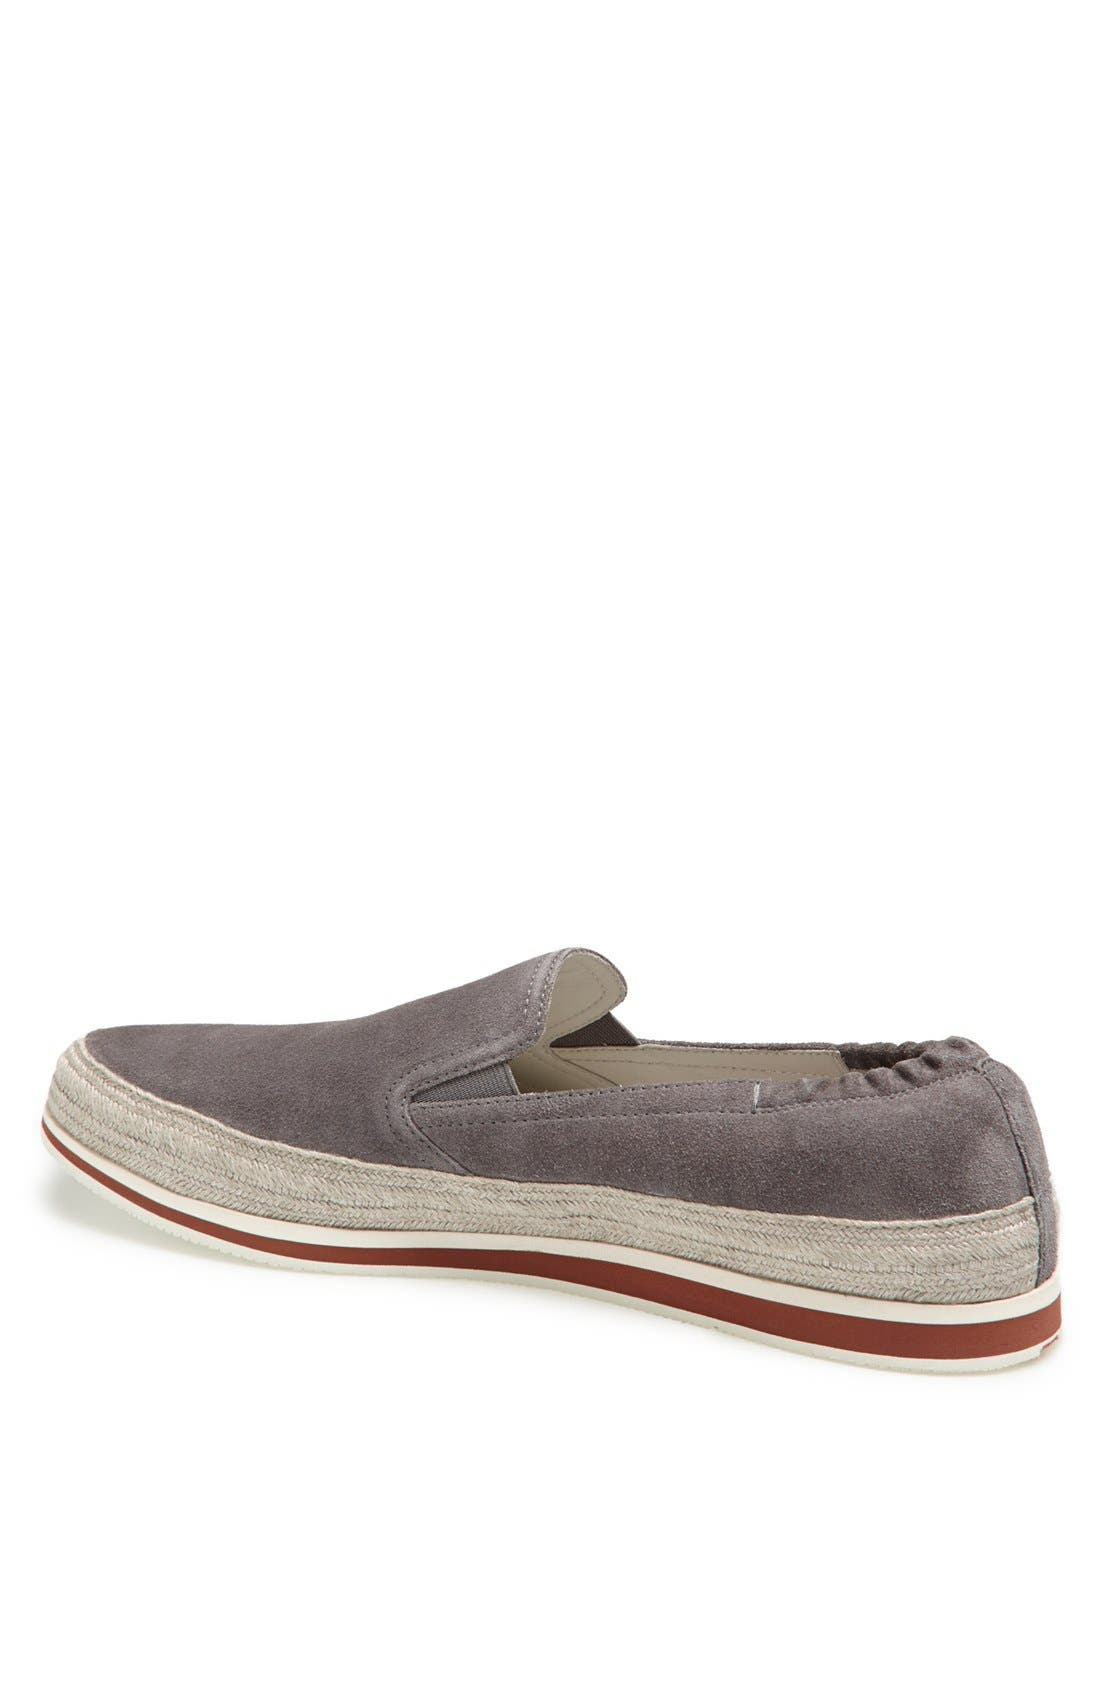 Espadrille Sneaker,                             Alternate thumbnail 2, color,                             033